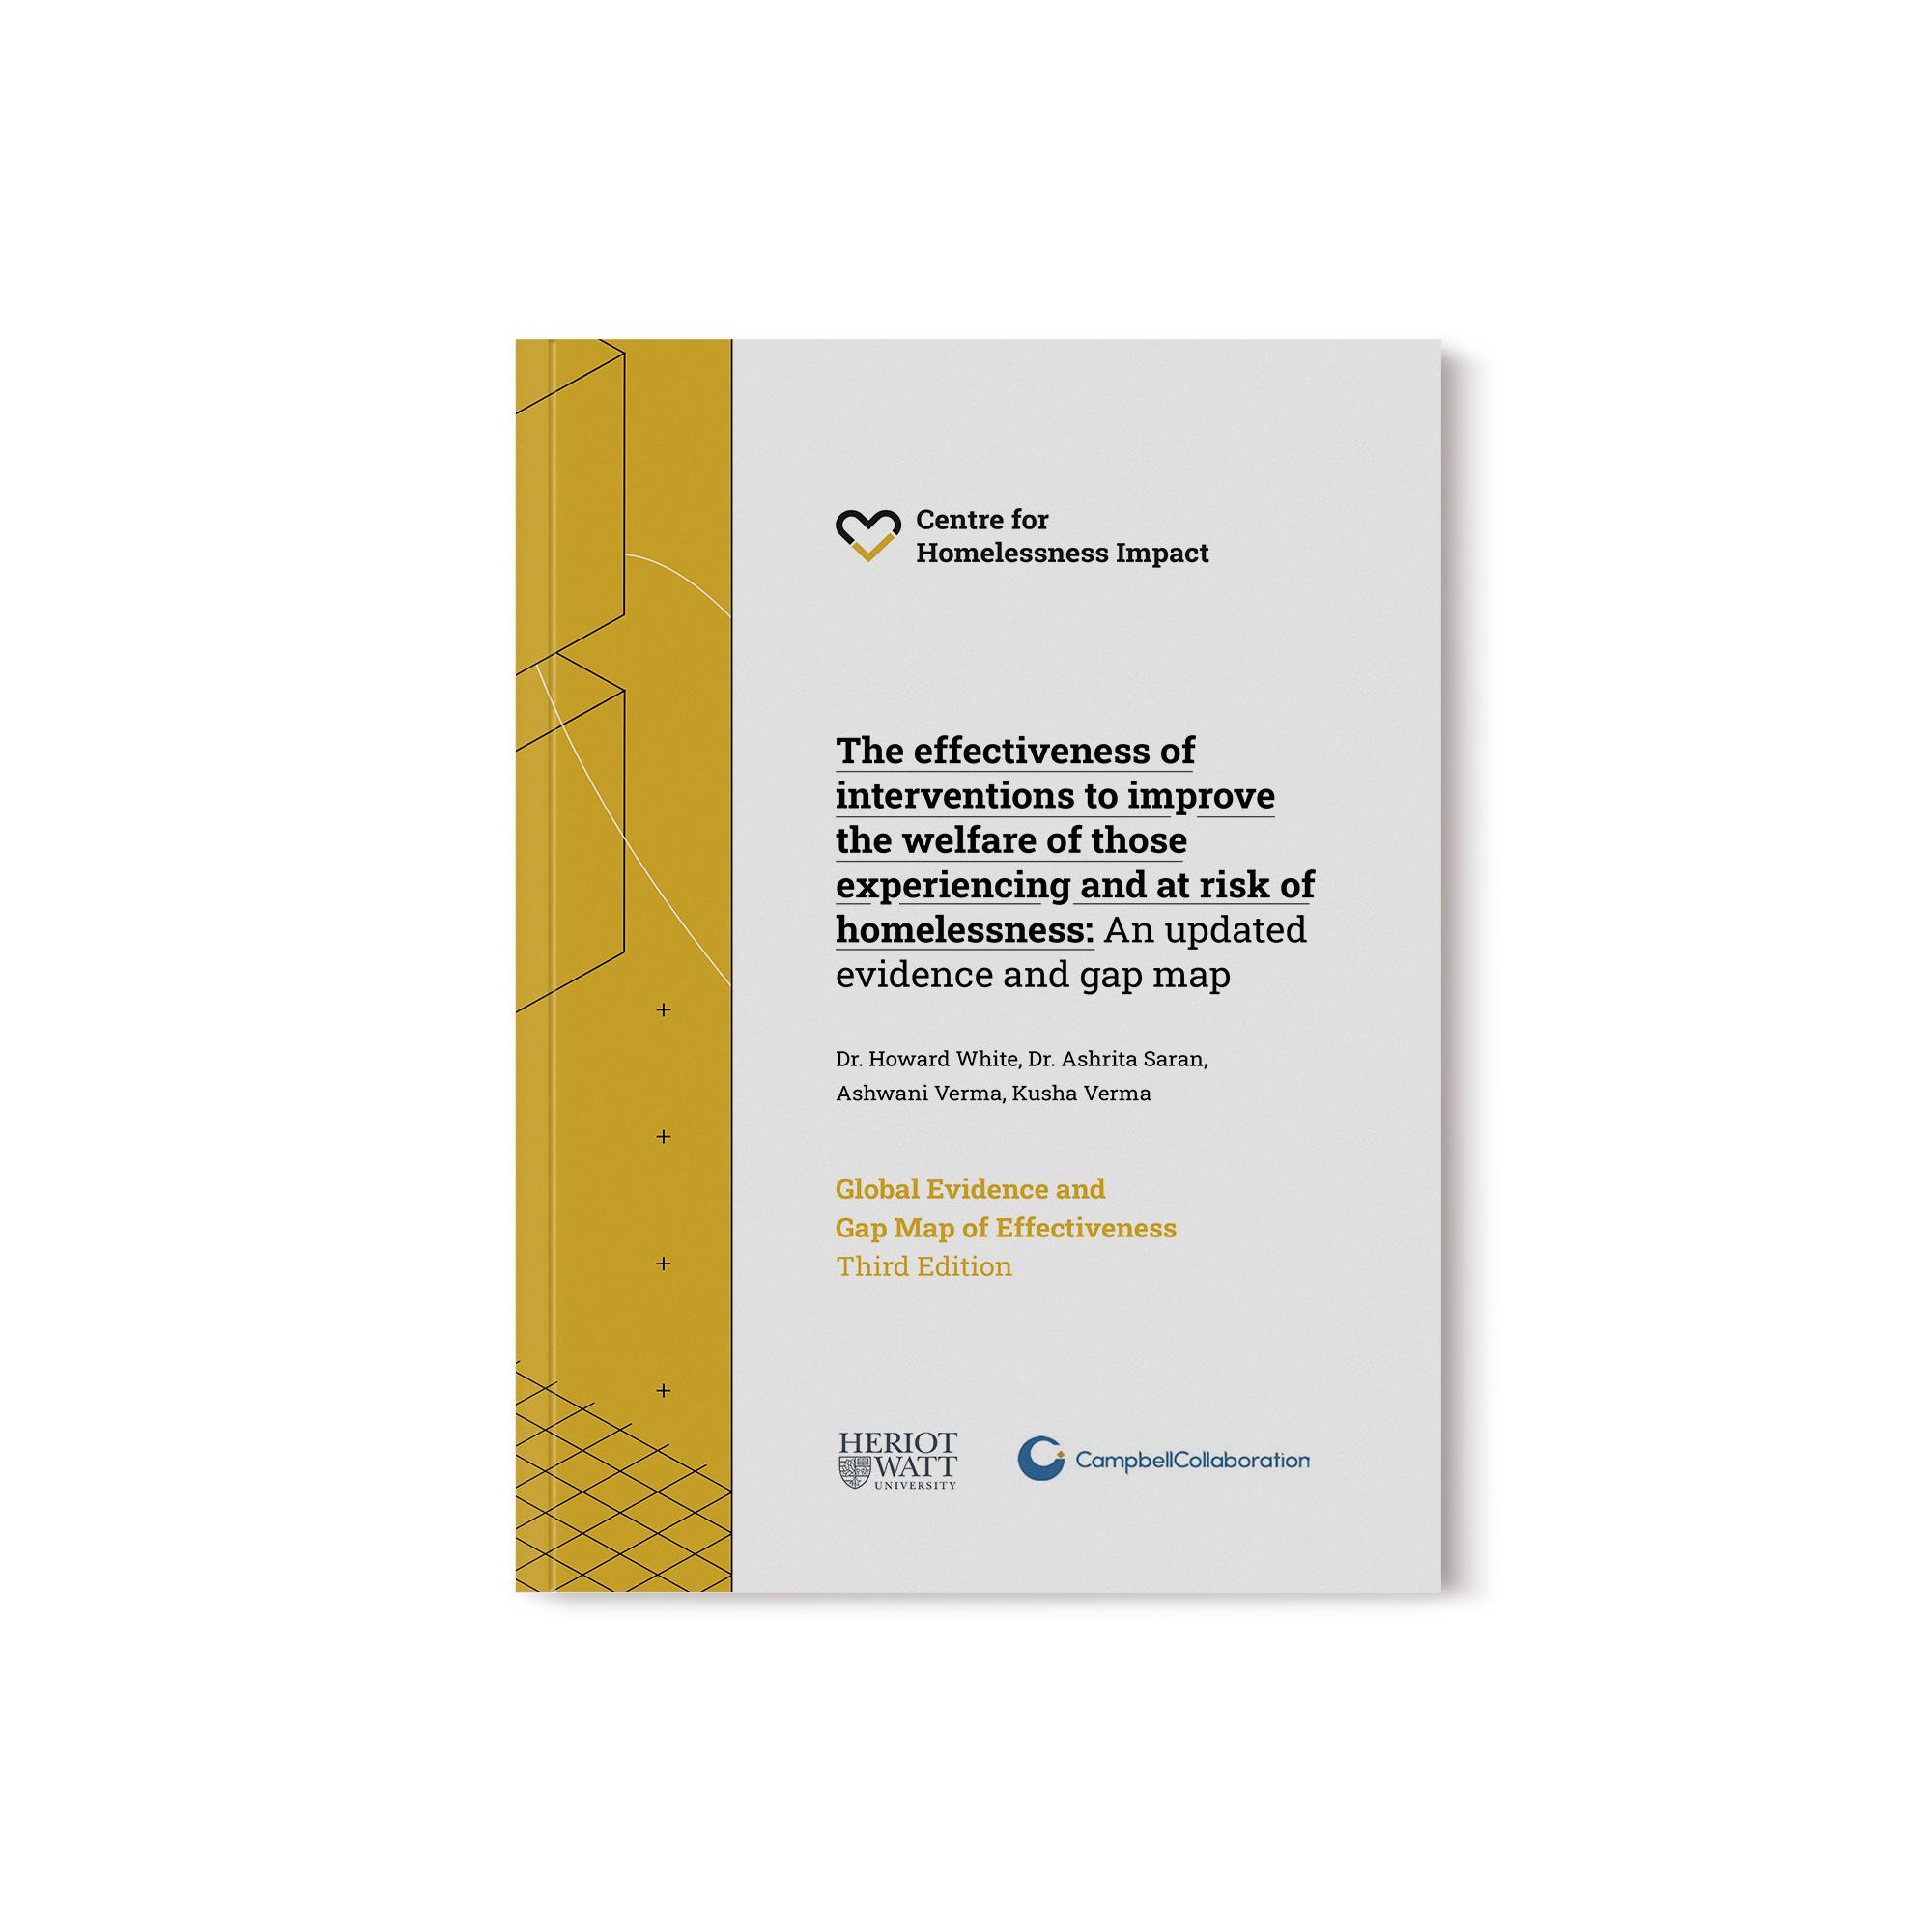 Report: Evidence and Gap Maps on Effectiveness, Third Edition